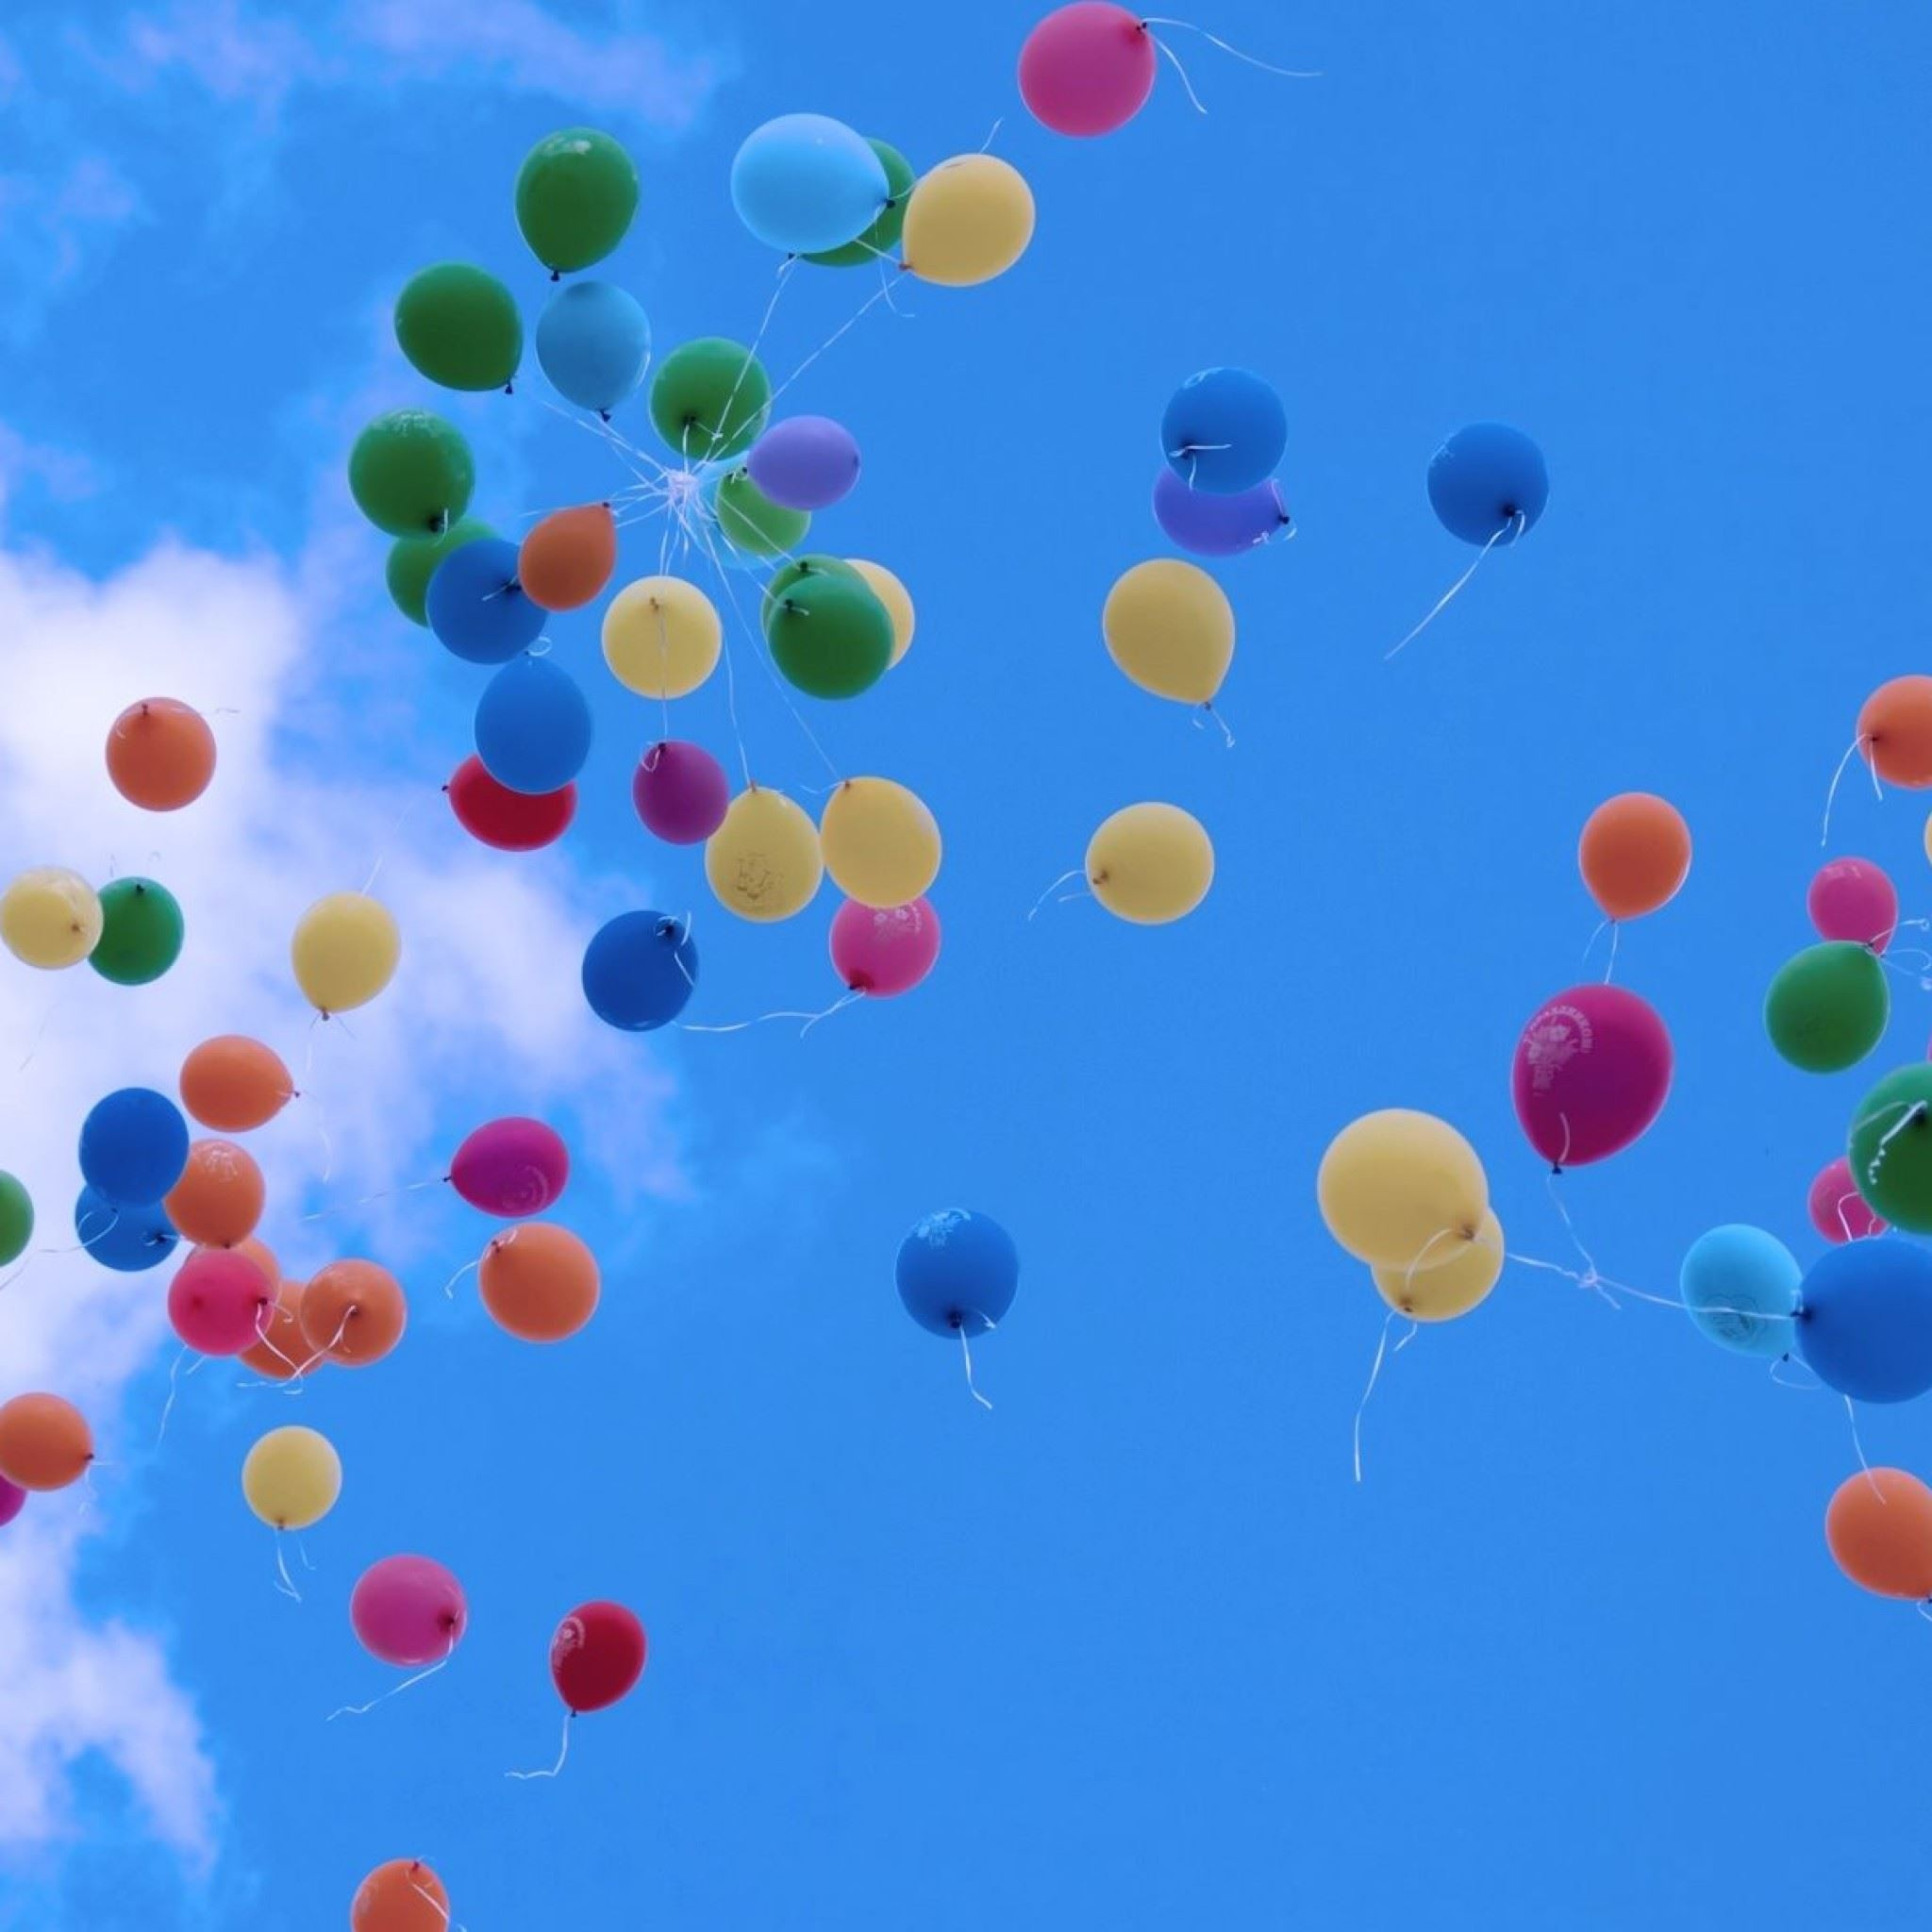 Sky Balloons iPad Air wallpaper